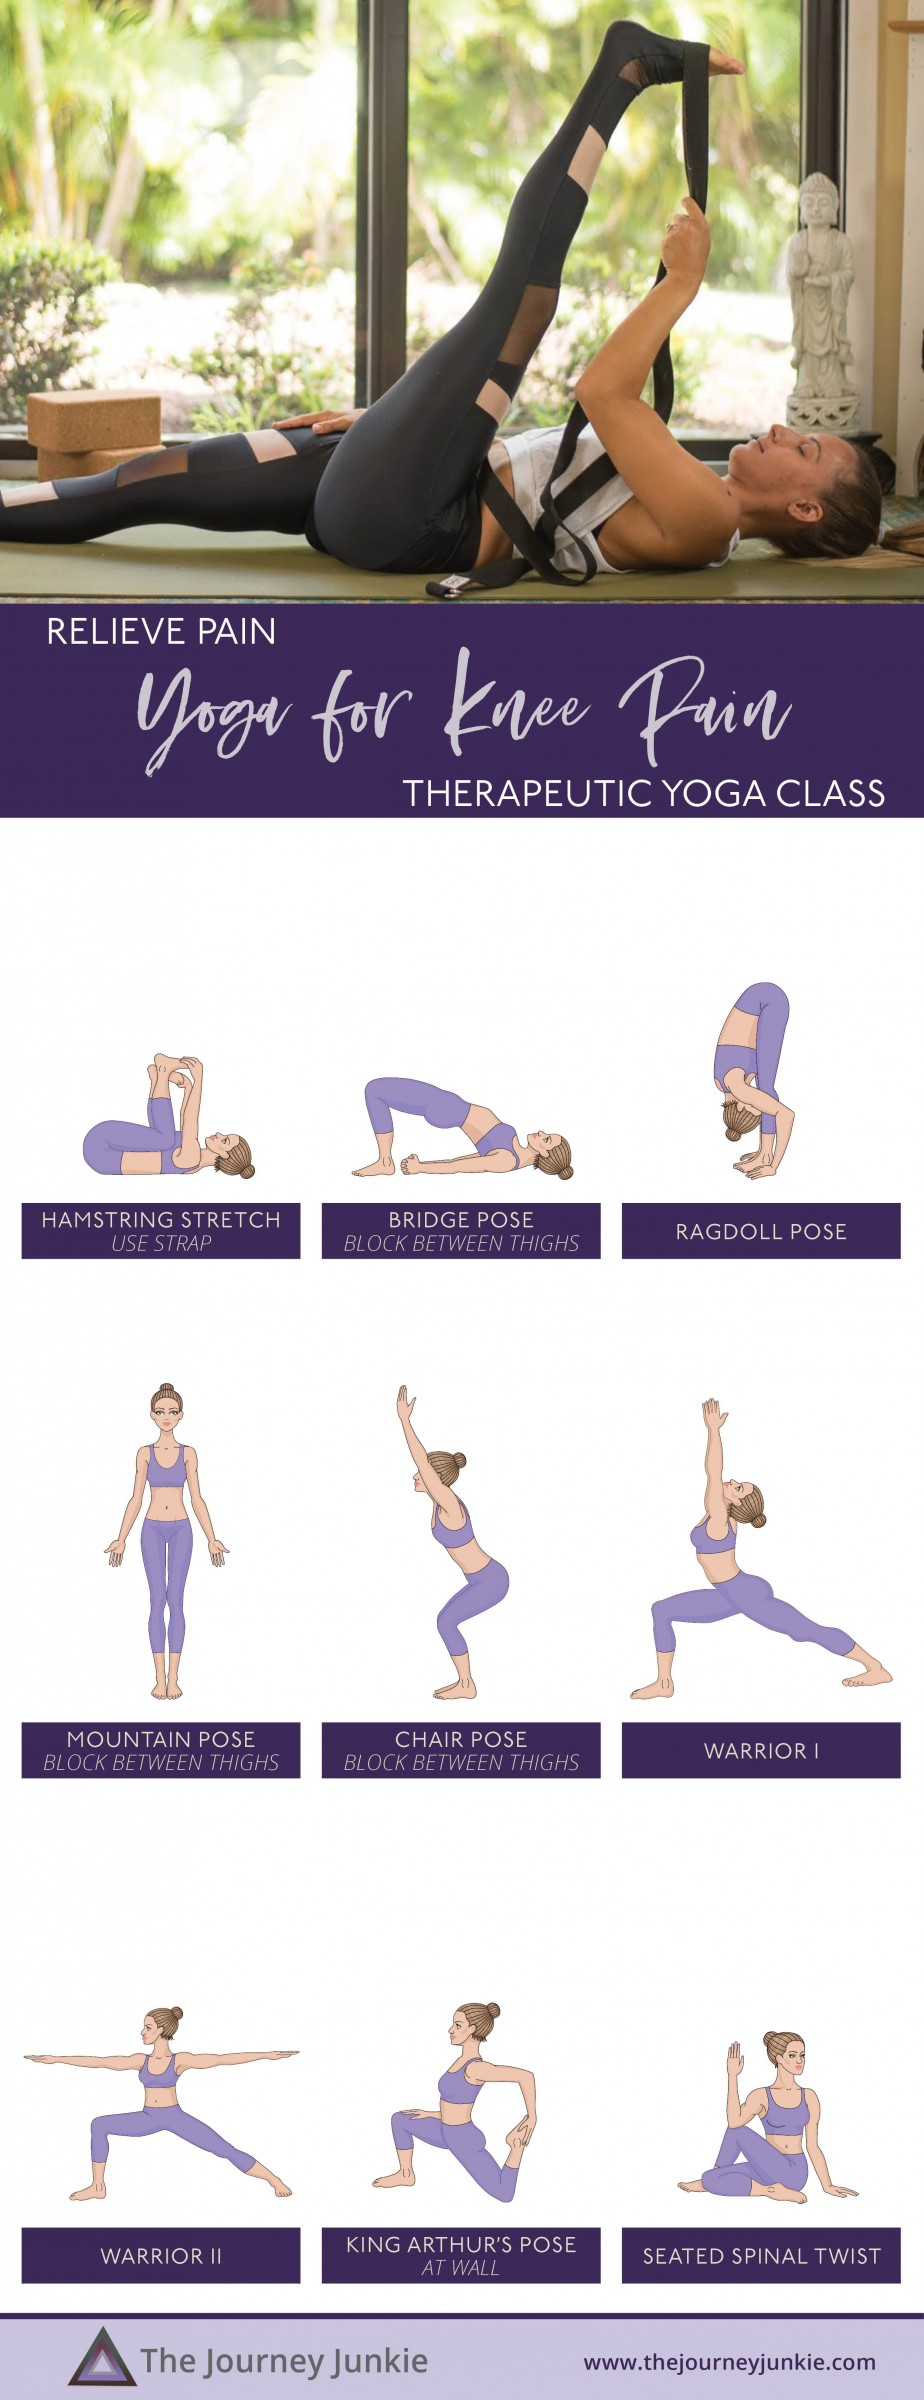 31++ Yoga poses for knee pain trends